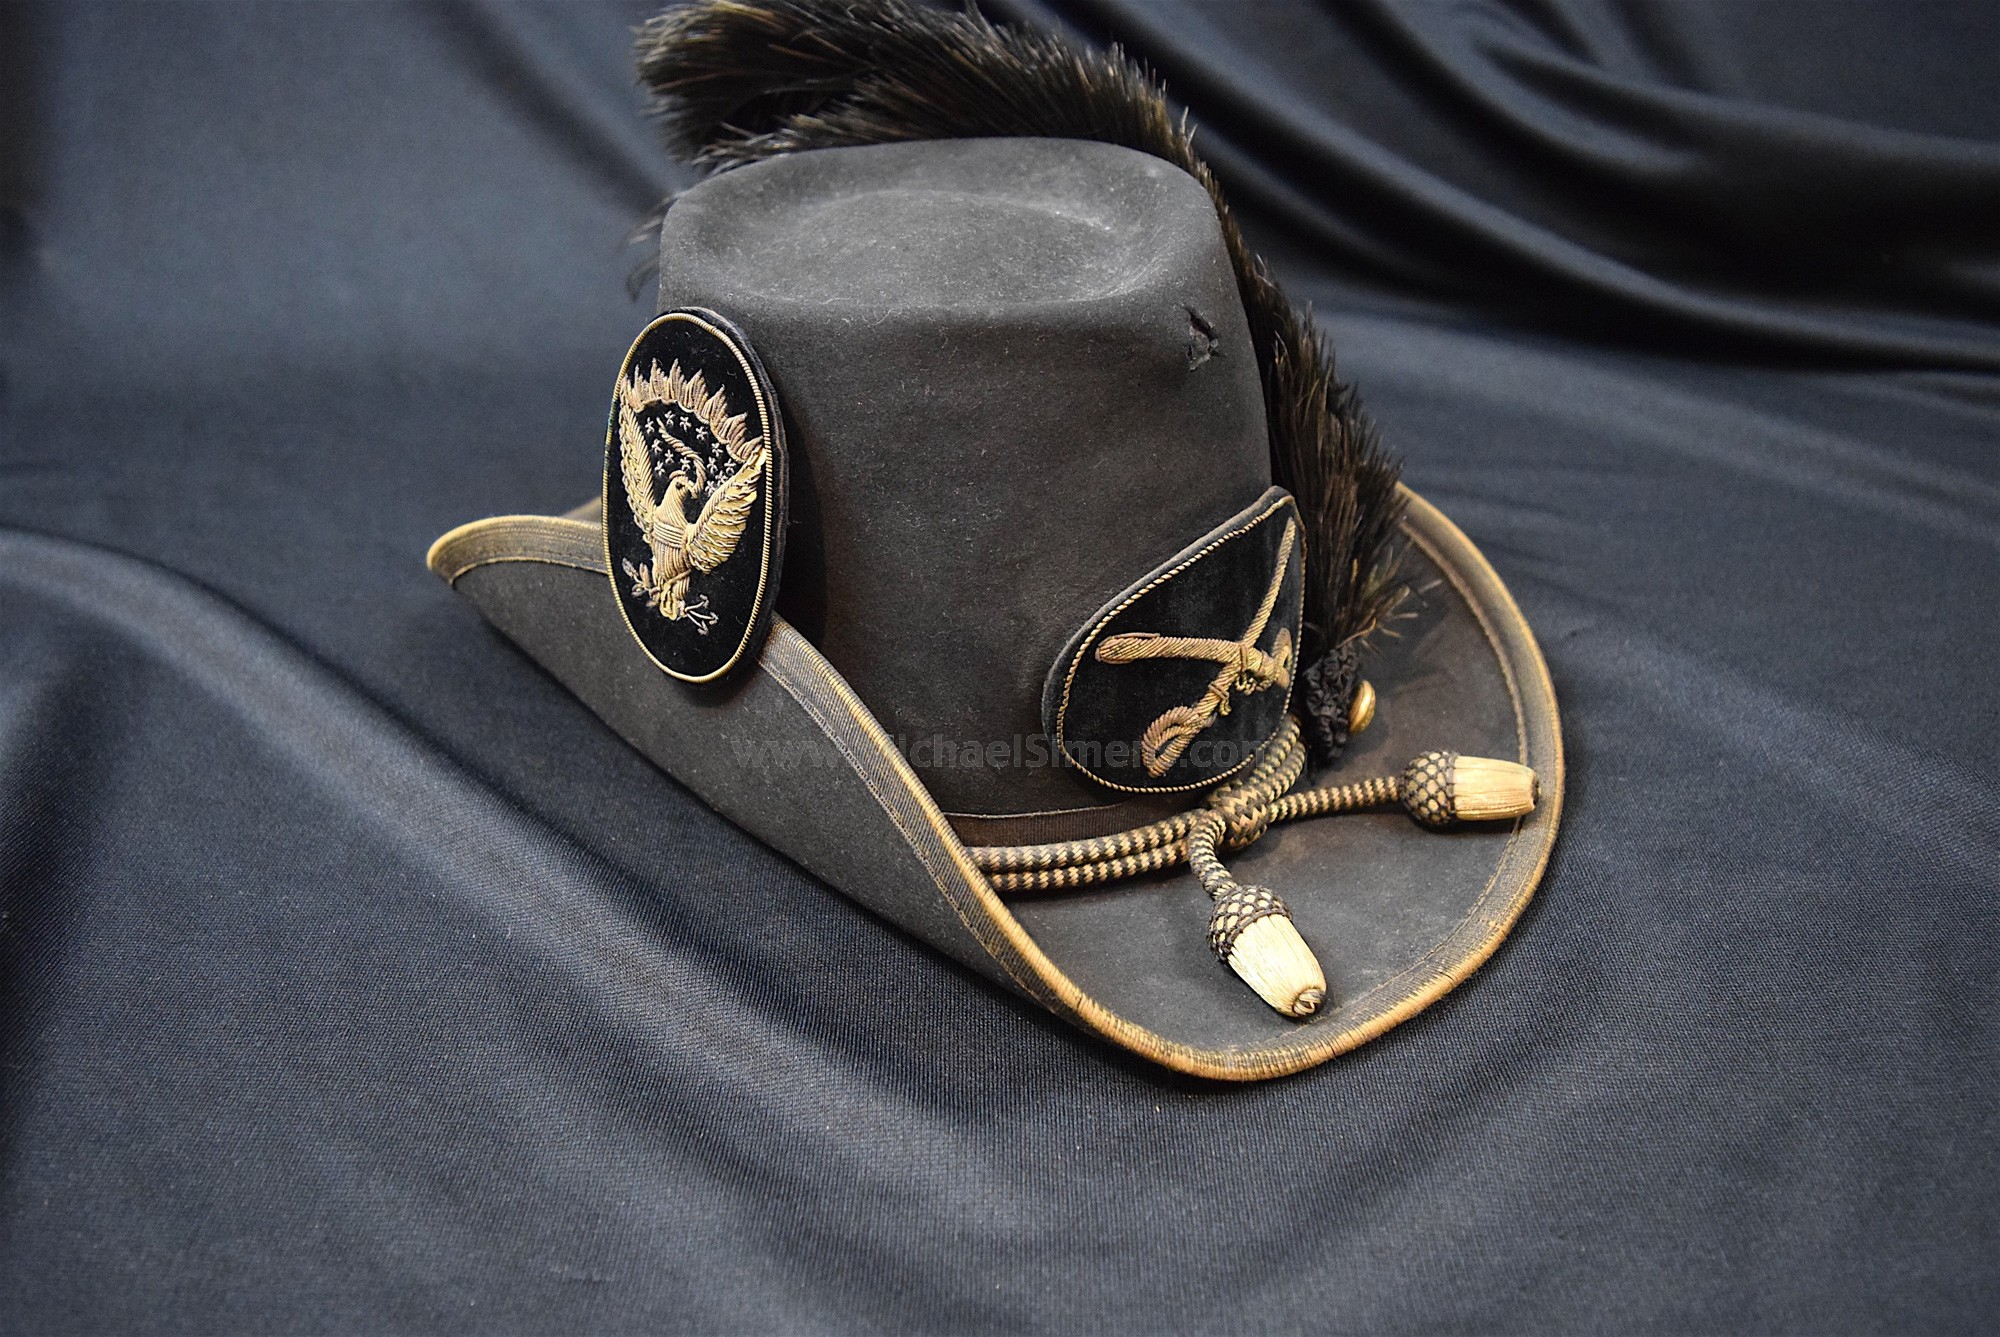 CIVIL WAR OFFICERS SLOUCH HAT